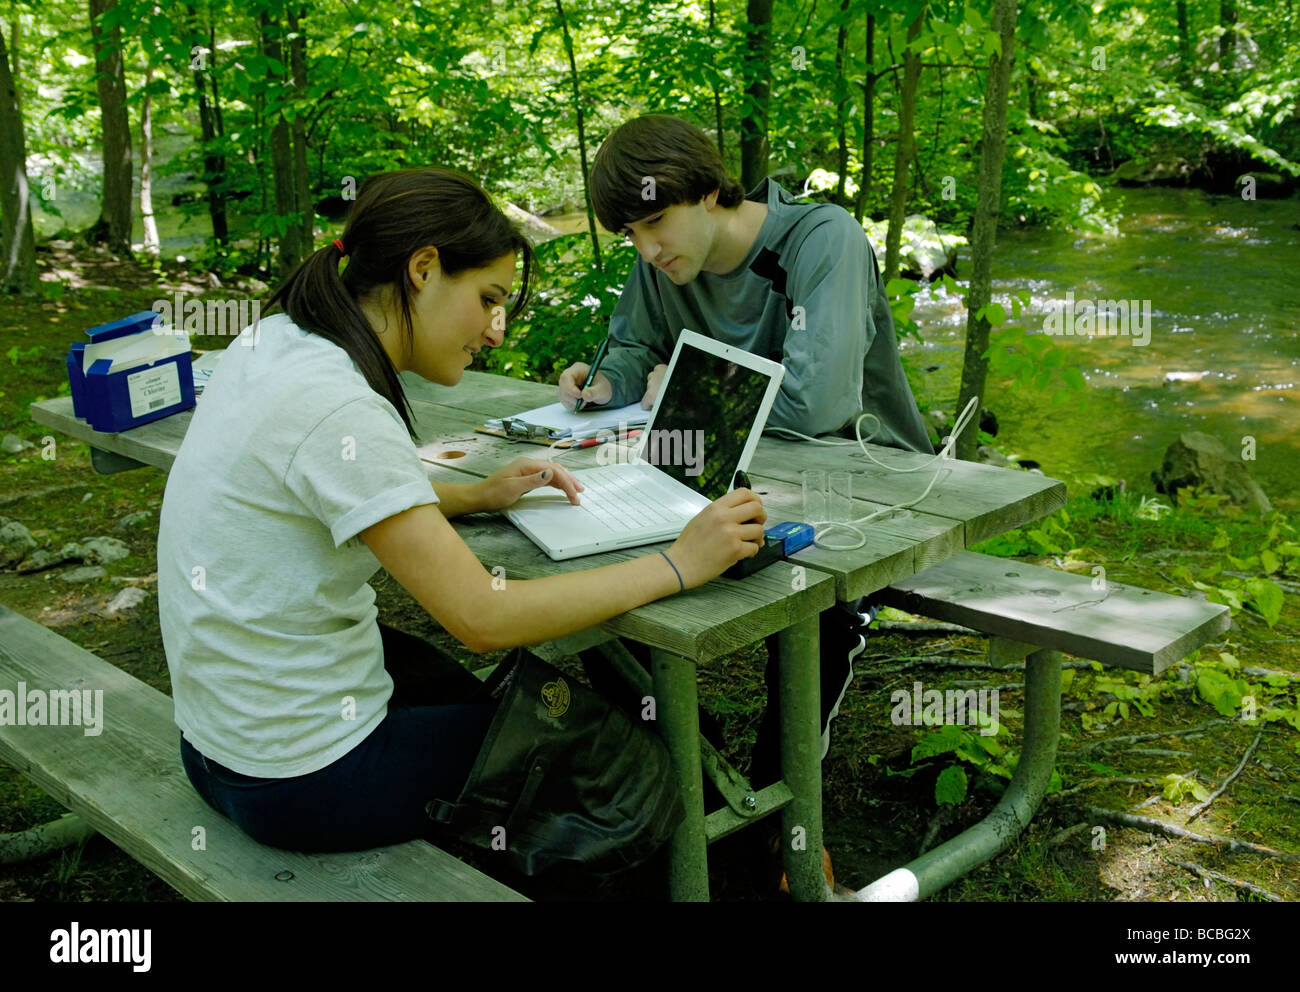 Two teens using a laptop interfaced sensor to measure the water quality of a stream - Stock Image